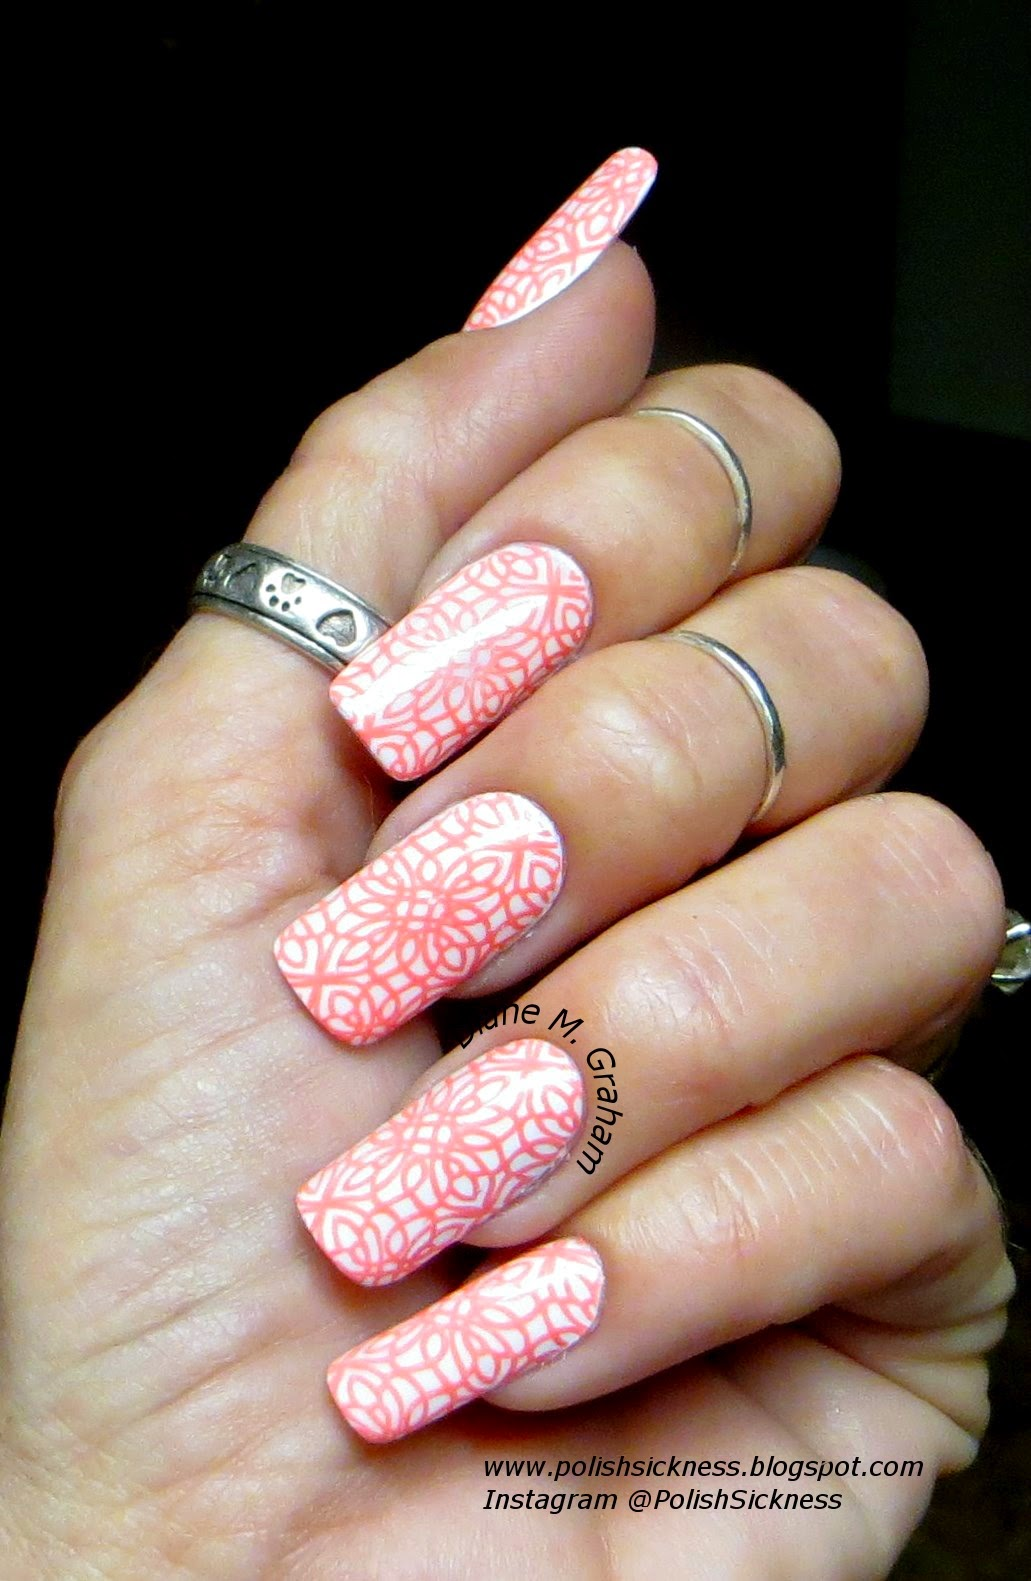 Cult El Porto, Mundo de Unas 71 Nabu, Fab Ur Nails FUN 13 stamp